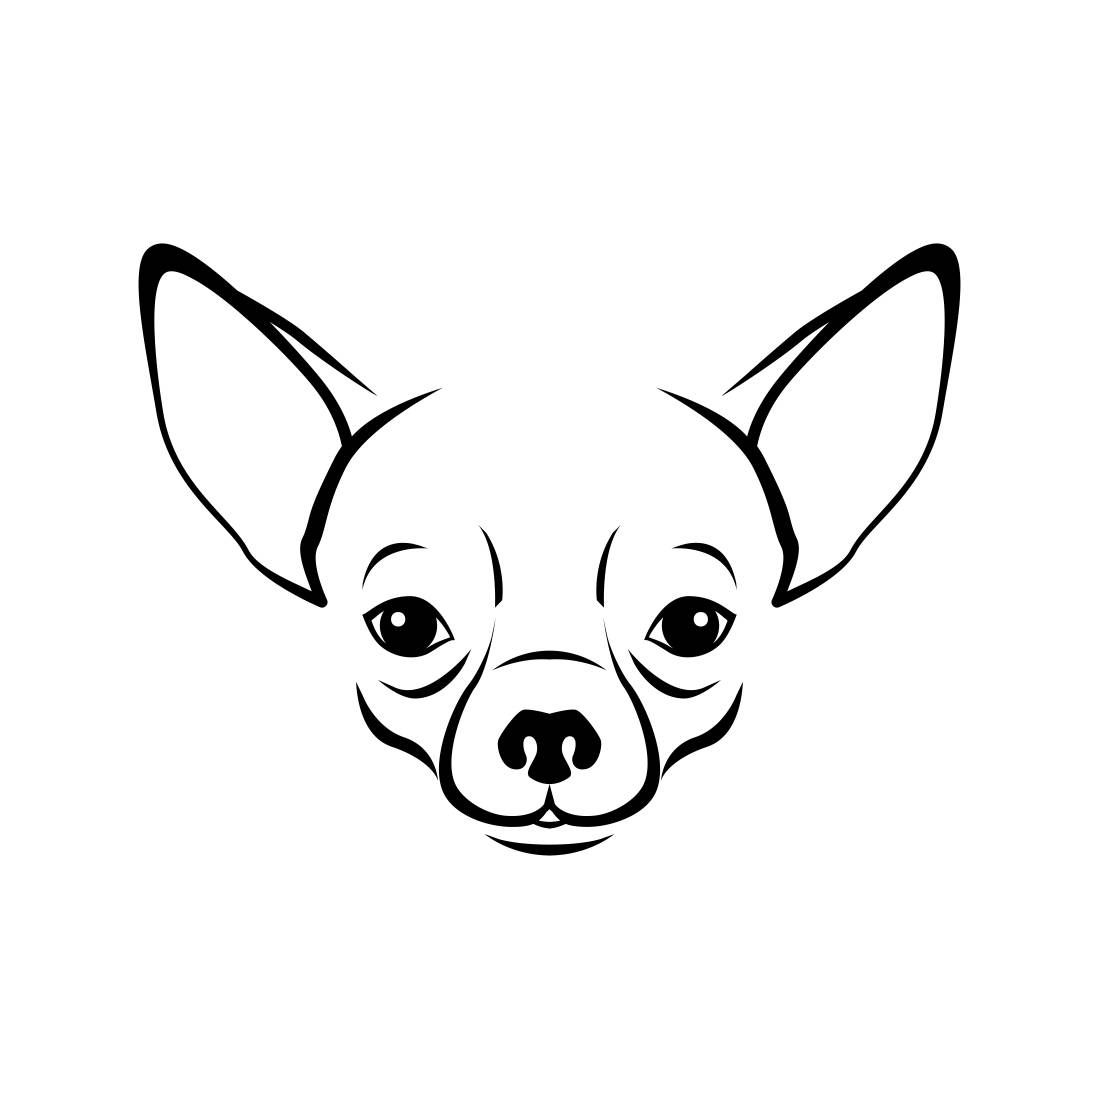 chihuahua outline outline of chihuahua to draw go back gt pics for gt mean outline chihuahua